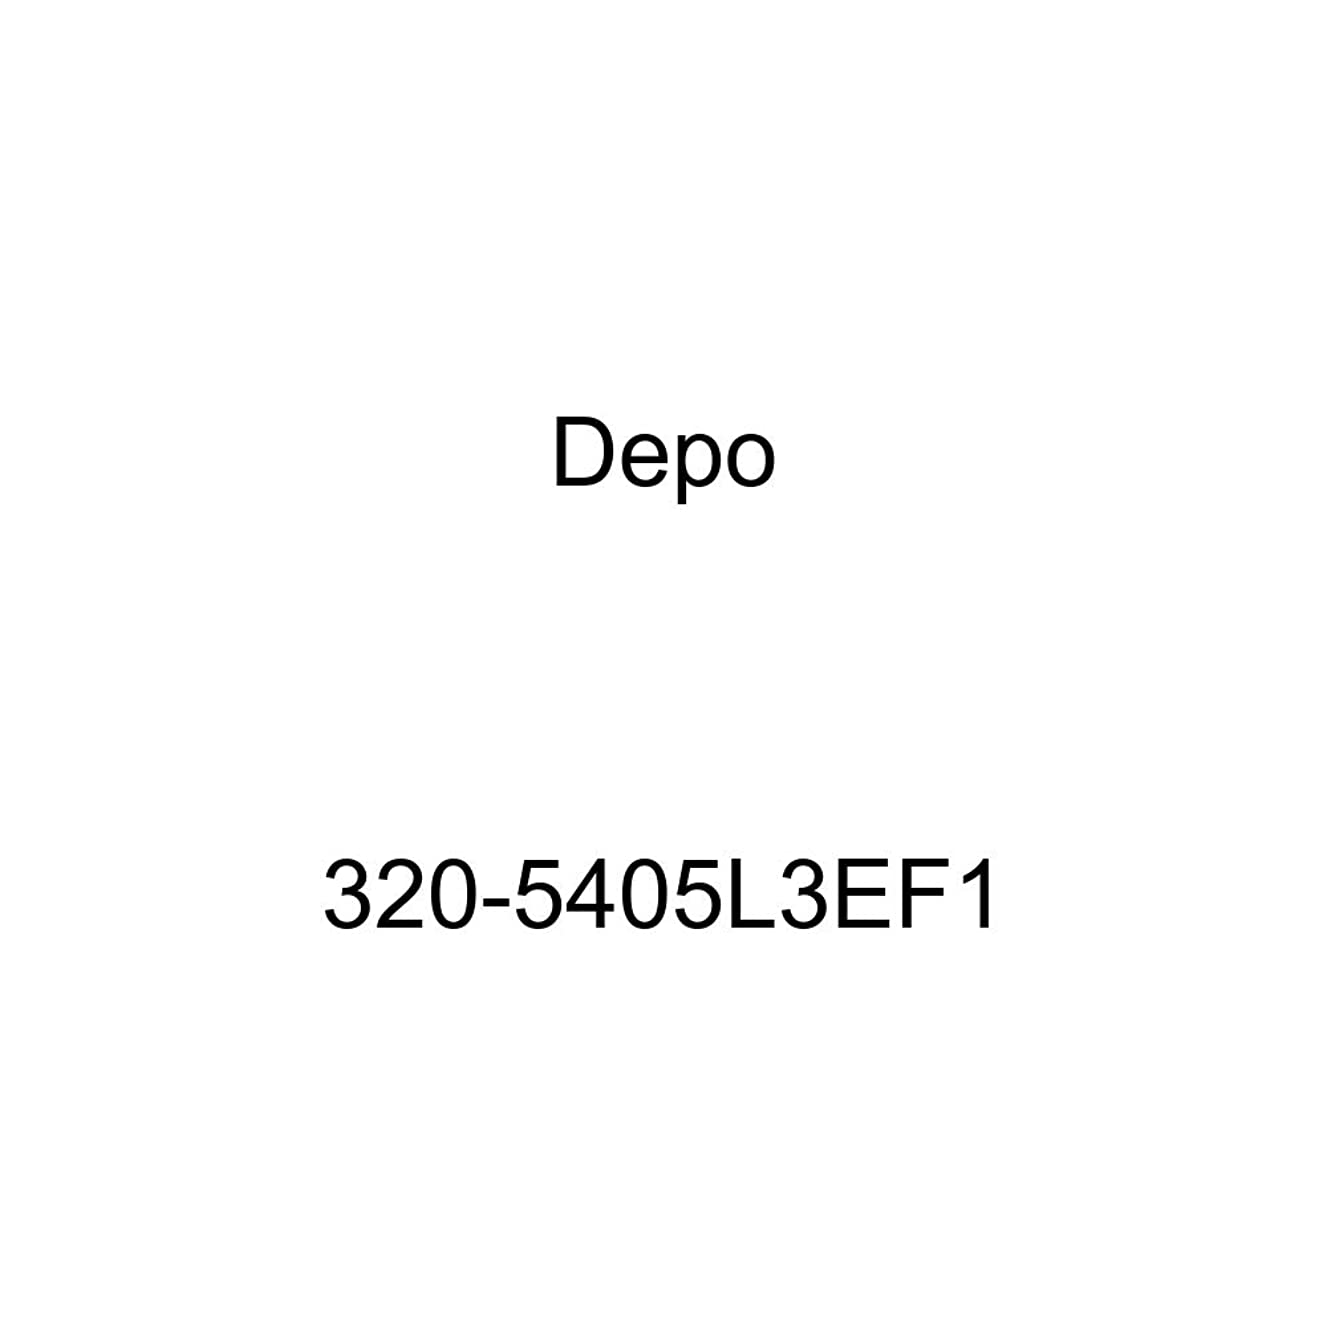 DEPO 320-5405L3EF1 Subaru Forester 09-10 Power Non-Heated Mirror Assembly Driver Side (Textured)